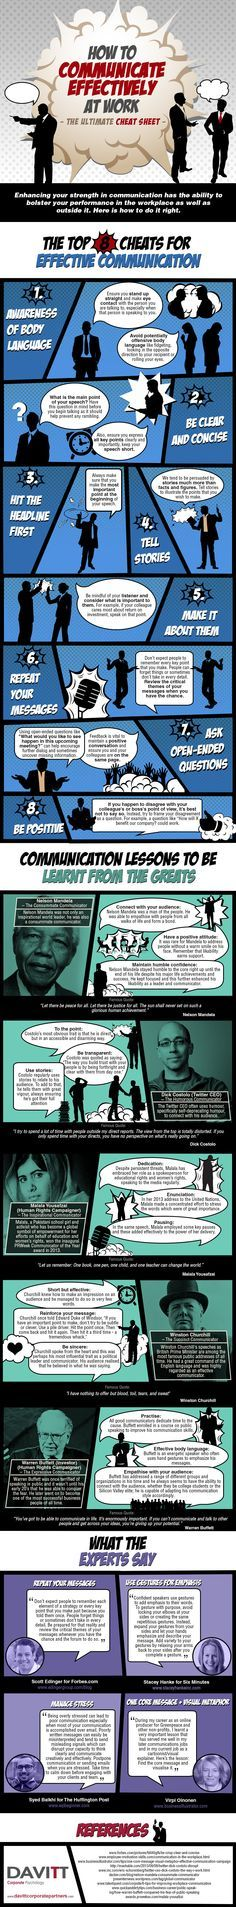 How to Communicate Effectively at Work [INFOGRAPHIC] http://theundercoverrecruiter.com/how-to-communicate-effectively-at-work/